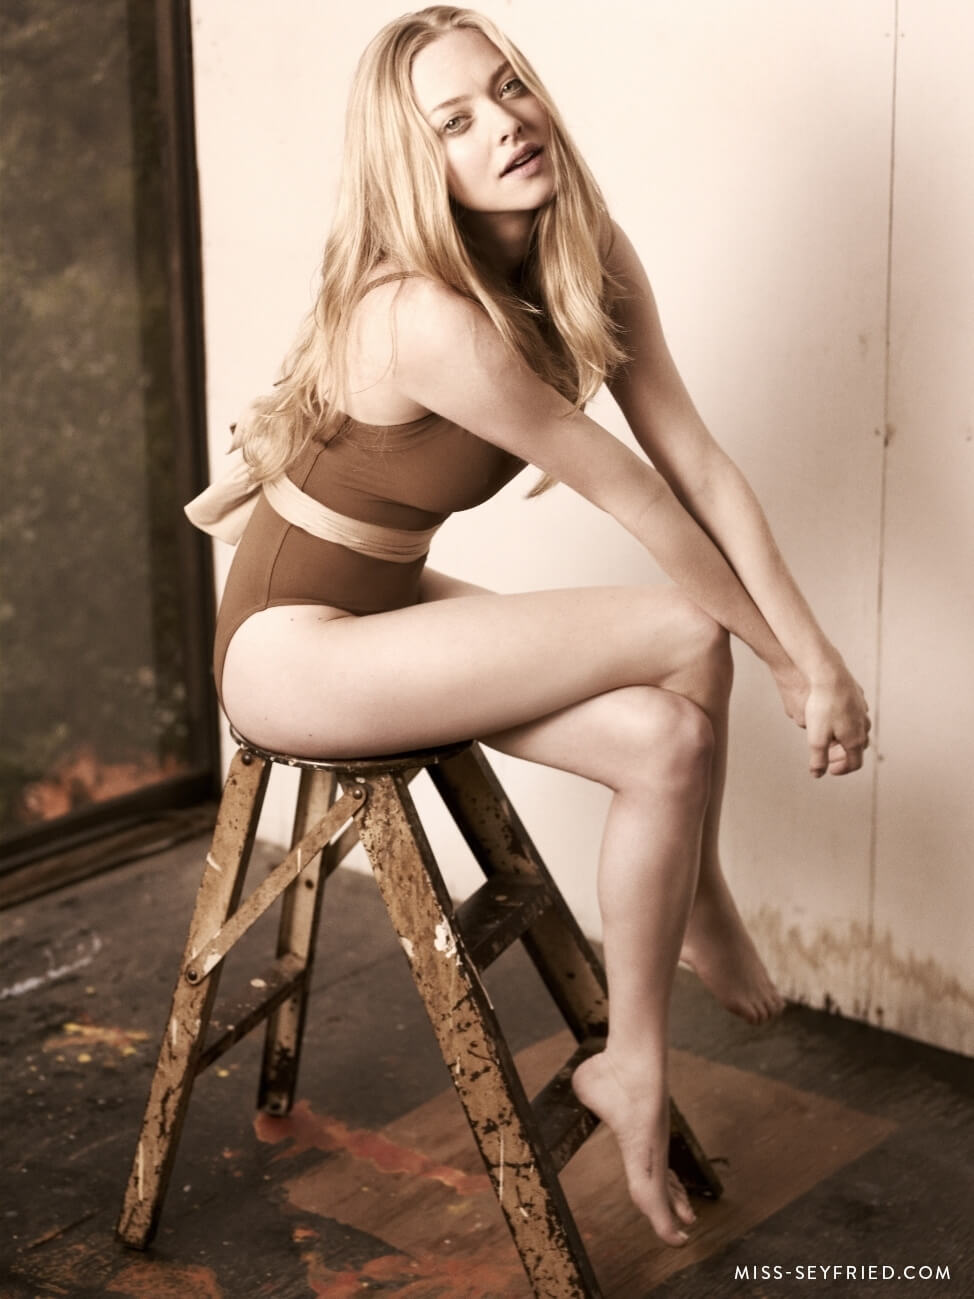 Amanda Seyfried Sex Nude 49 sexy amanda seyfried feet pictures will blow your minds